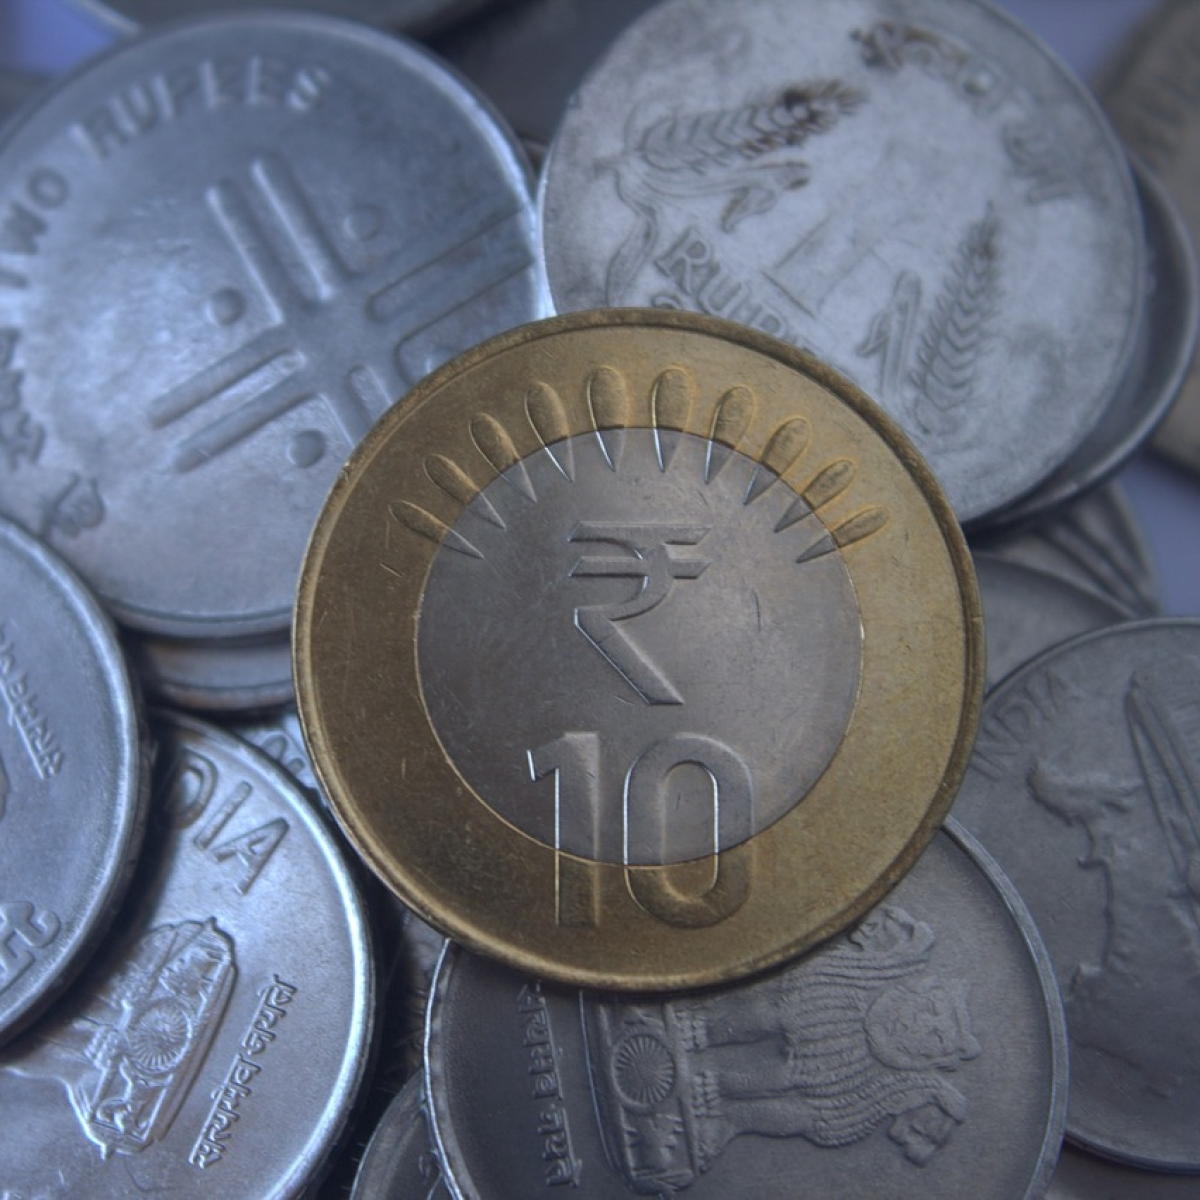 Mumbai: 'Lakshmi Ganga' - BEST staff to be partly paid in coins